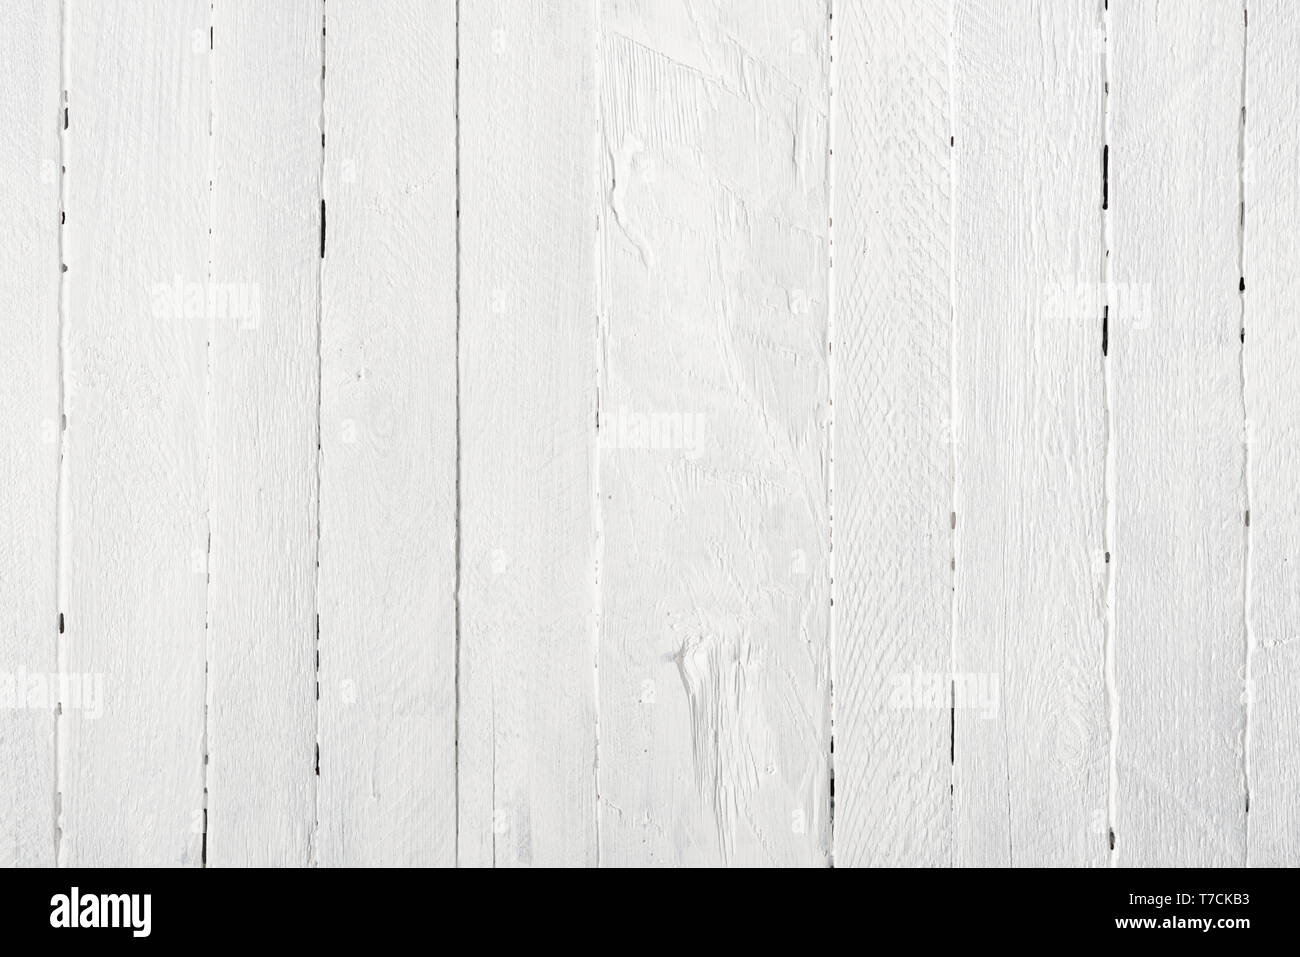 White wooden table texture background flat lay top view - Stock Image